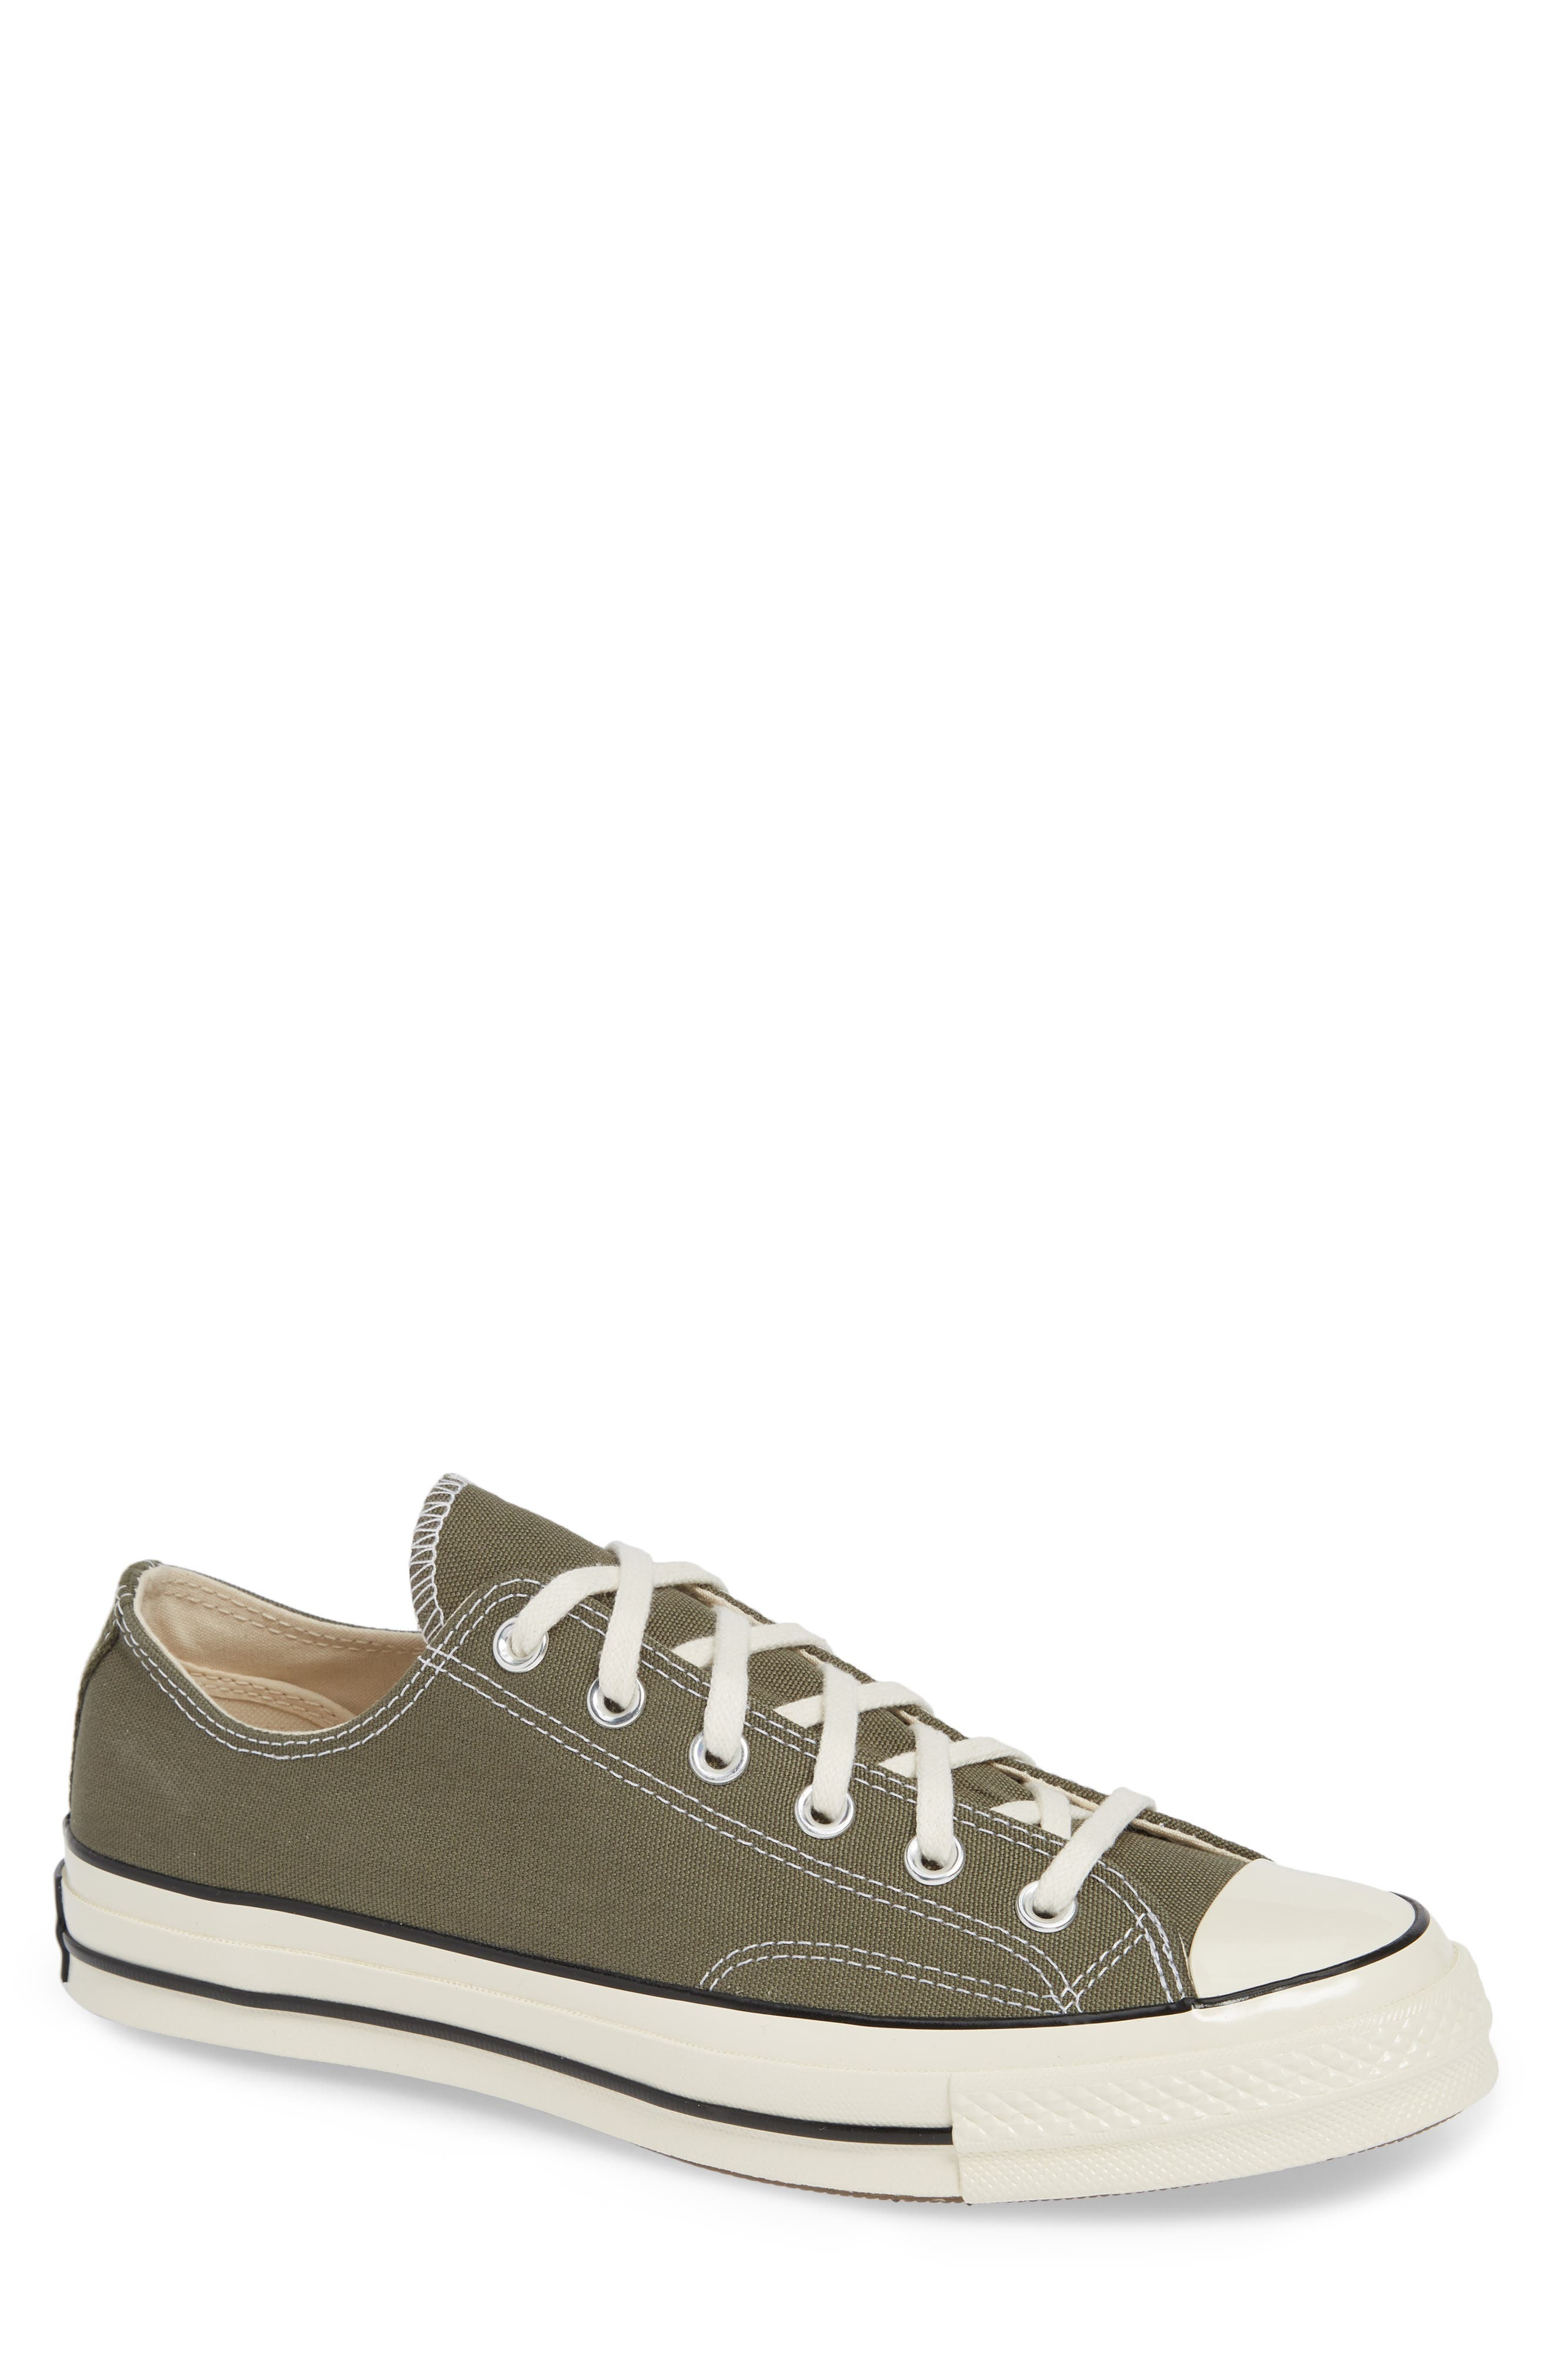 Chuck Taylor<sup>®</sup> All Star<sup>®</sup> '70 Low Sneaker,                         Main,                         color, FIELD SURPLUS/ BLACK/ EGRET